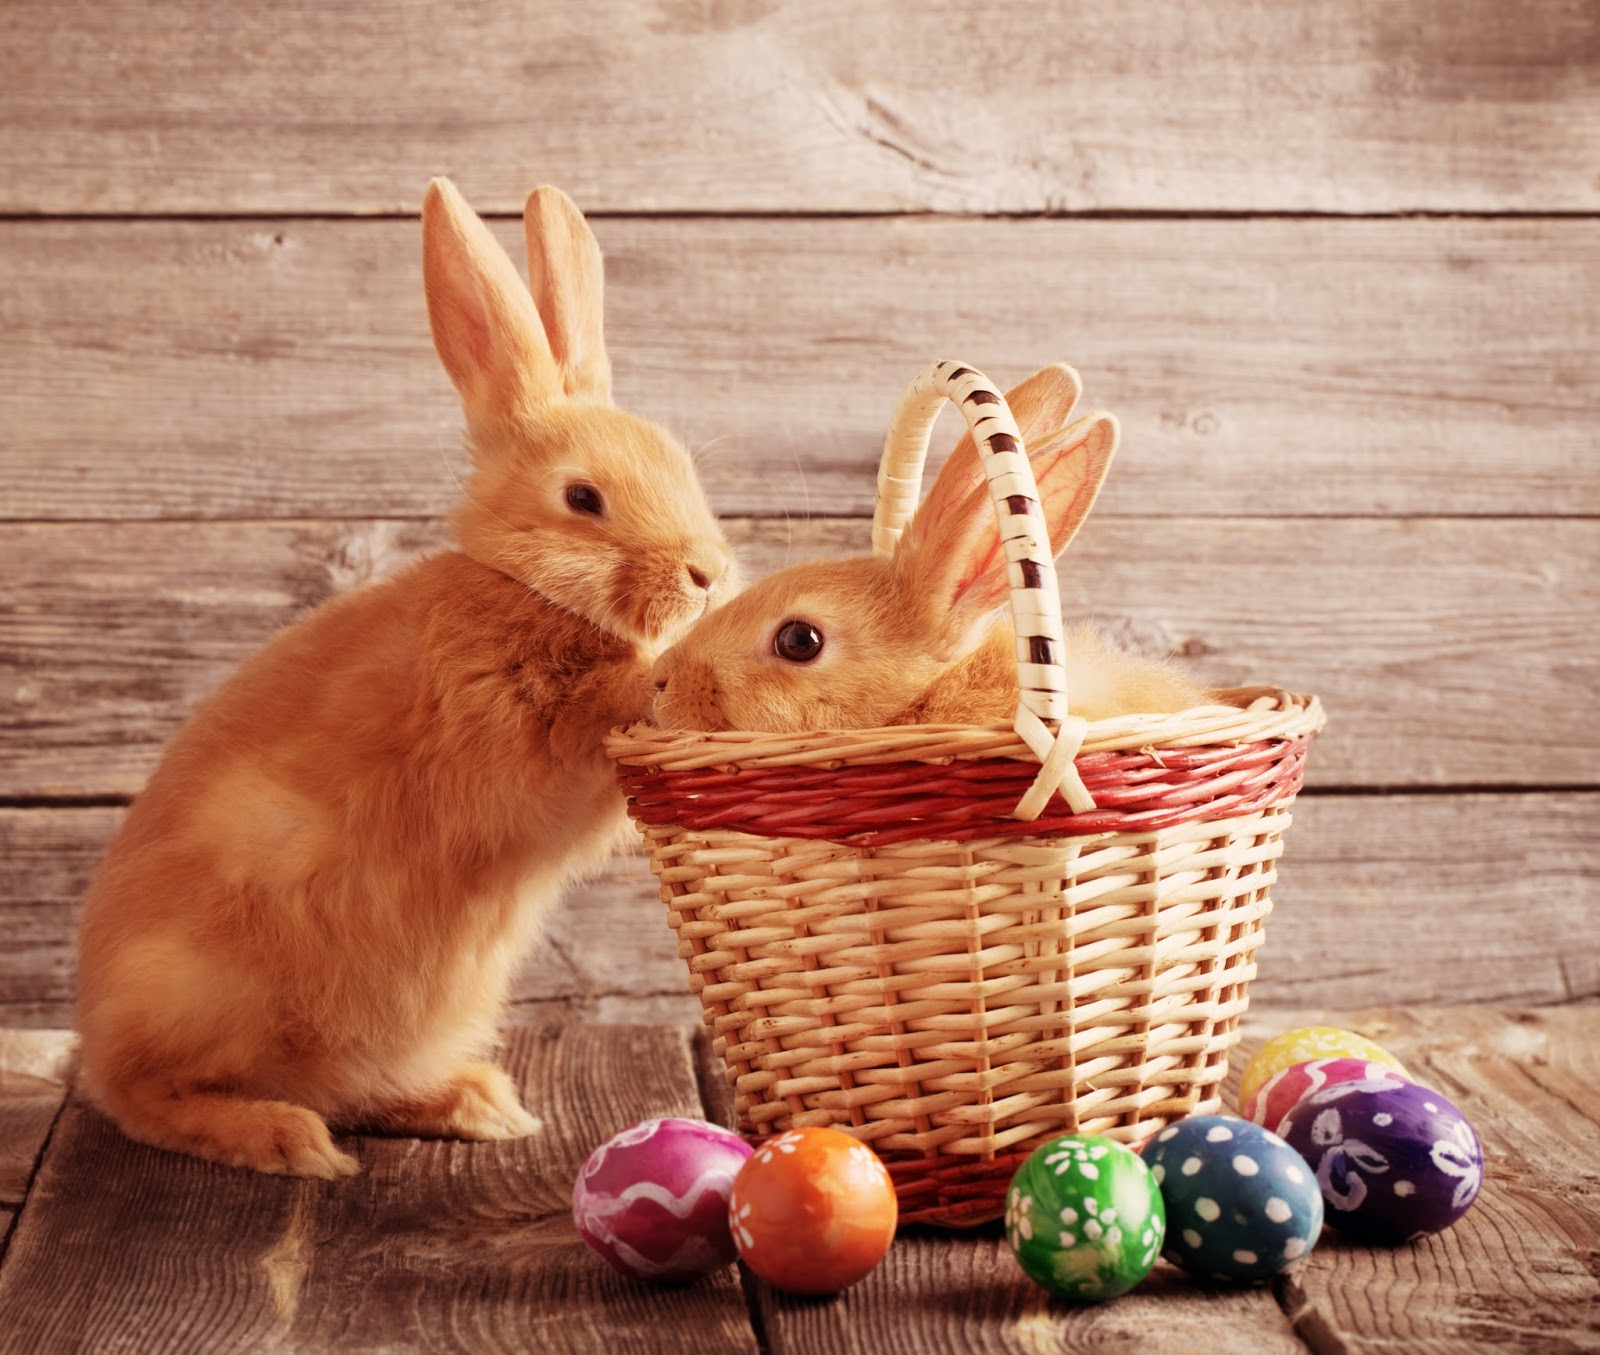 Unequally Yoked Marriage: Bunnies